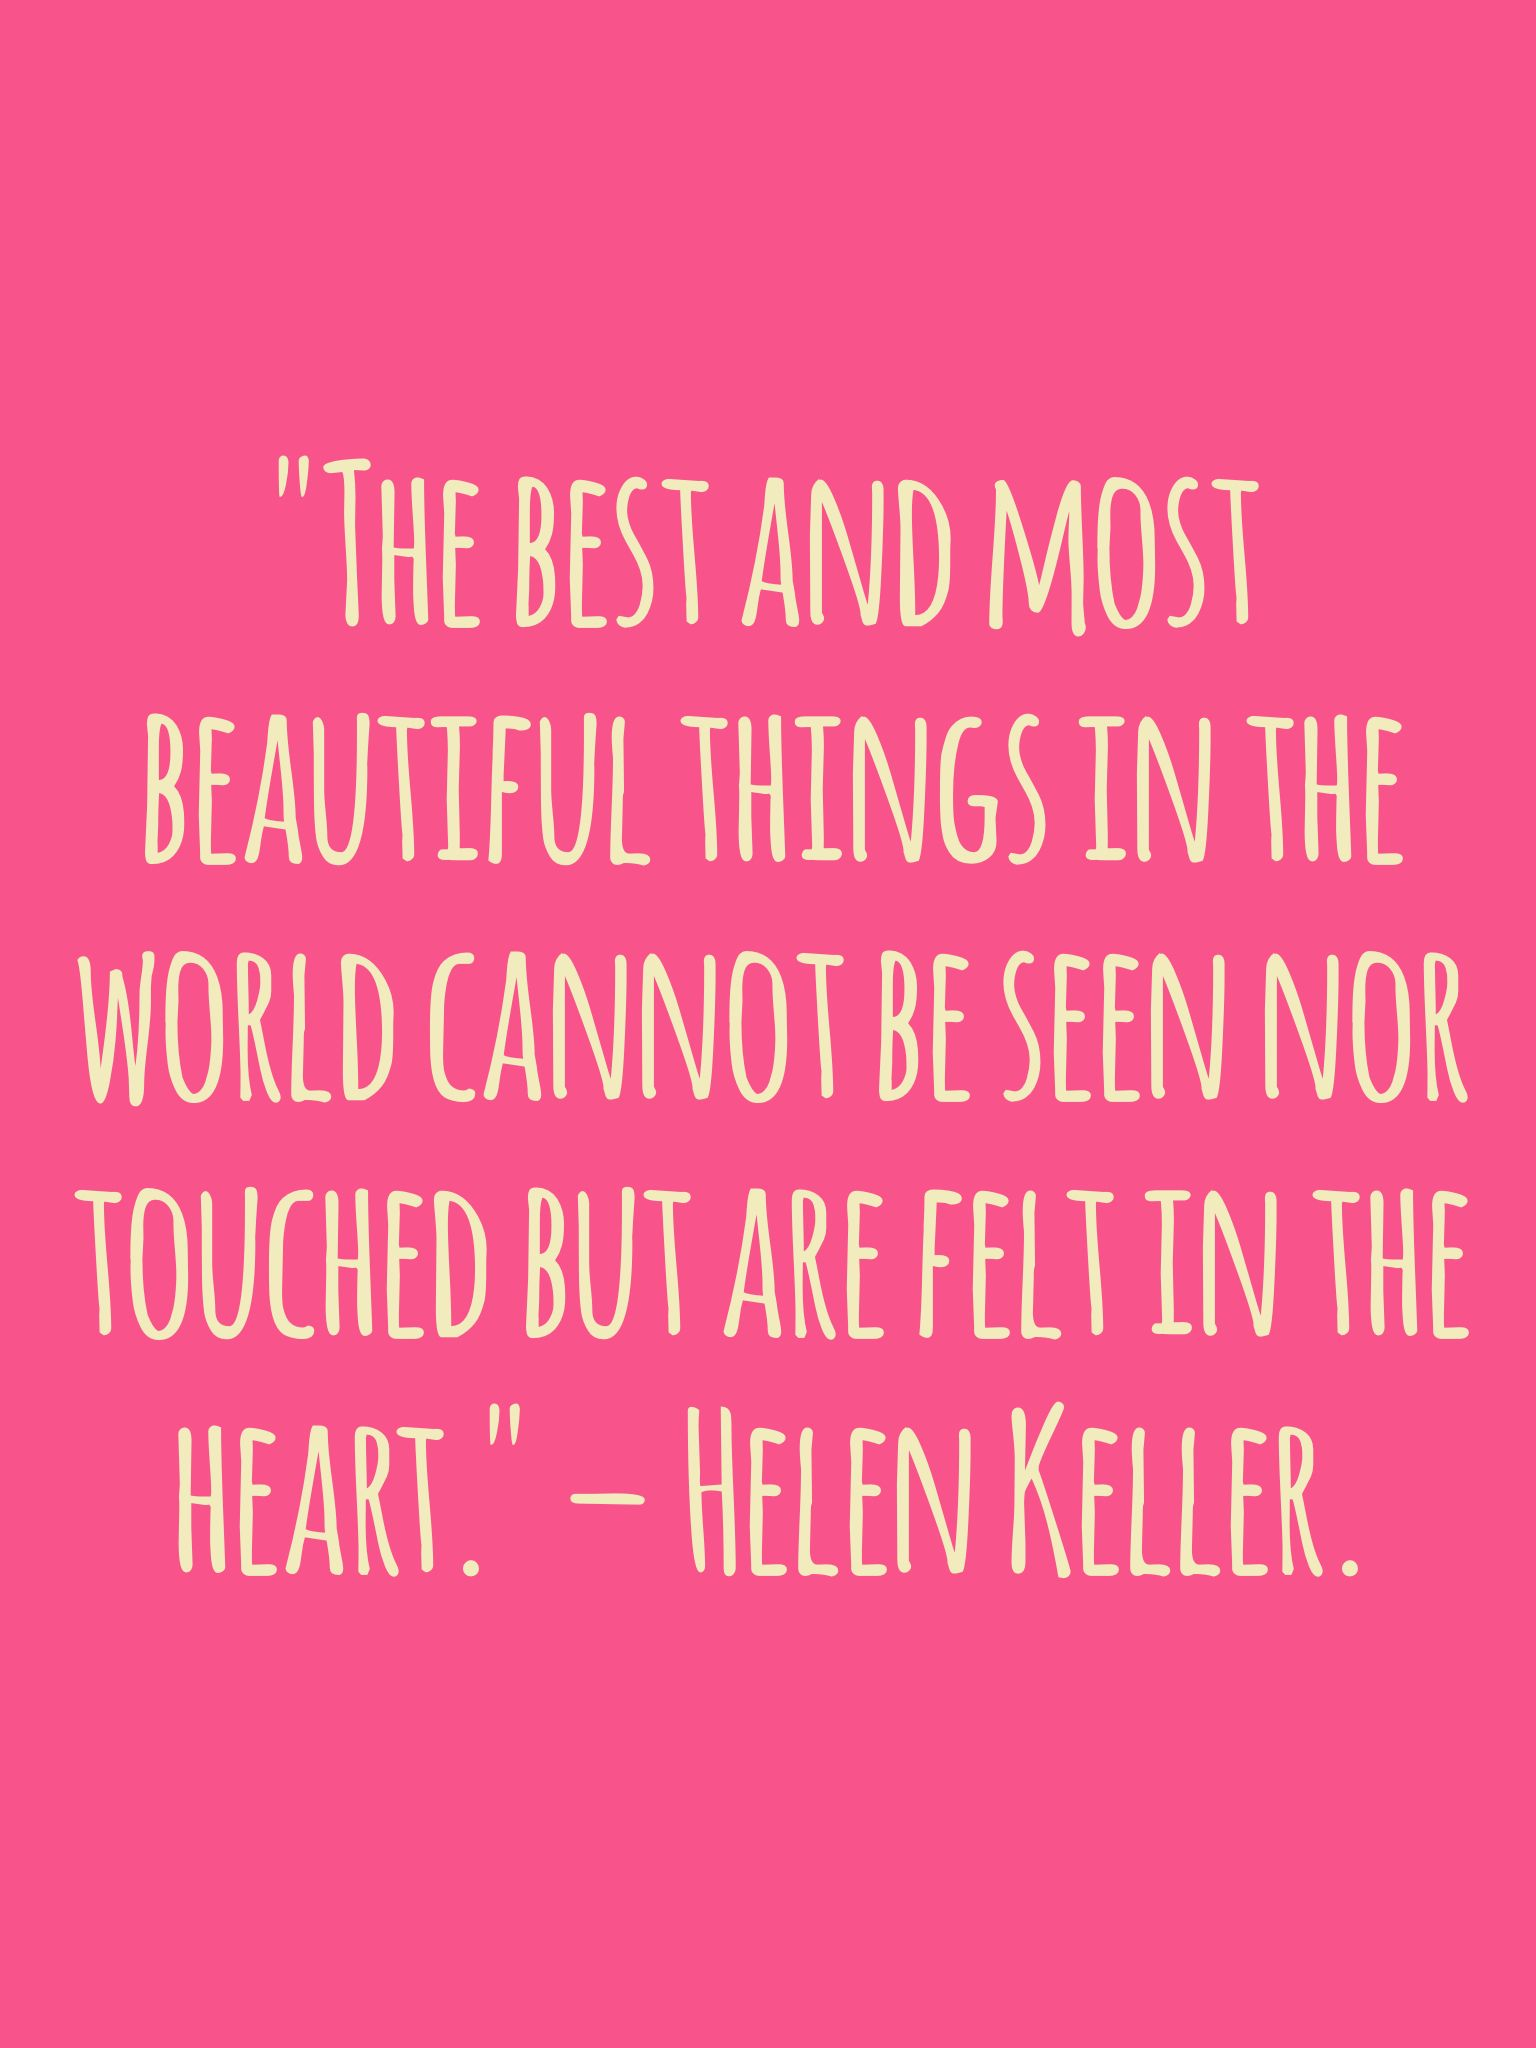 The best and most beautiful things in the world cannot be seen nor ...